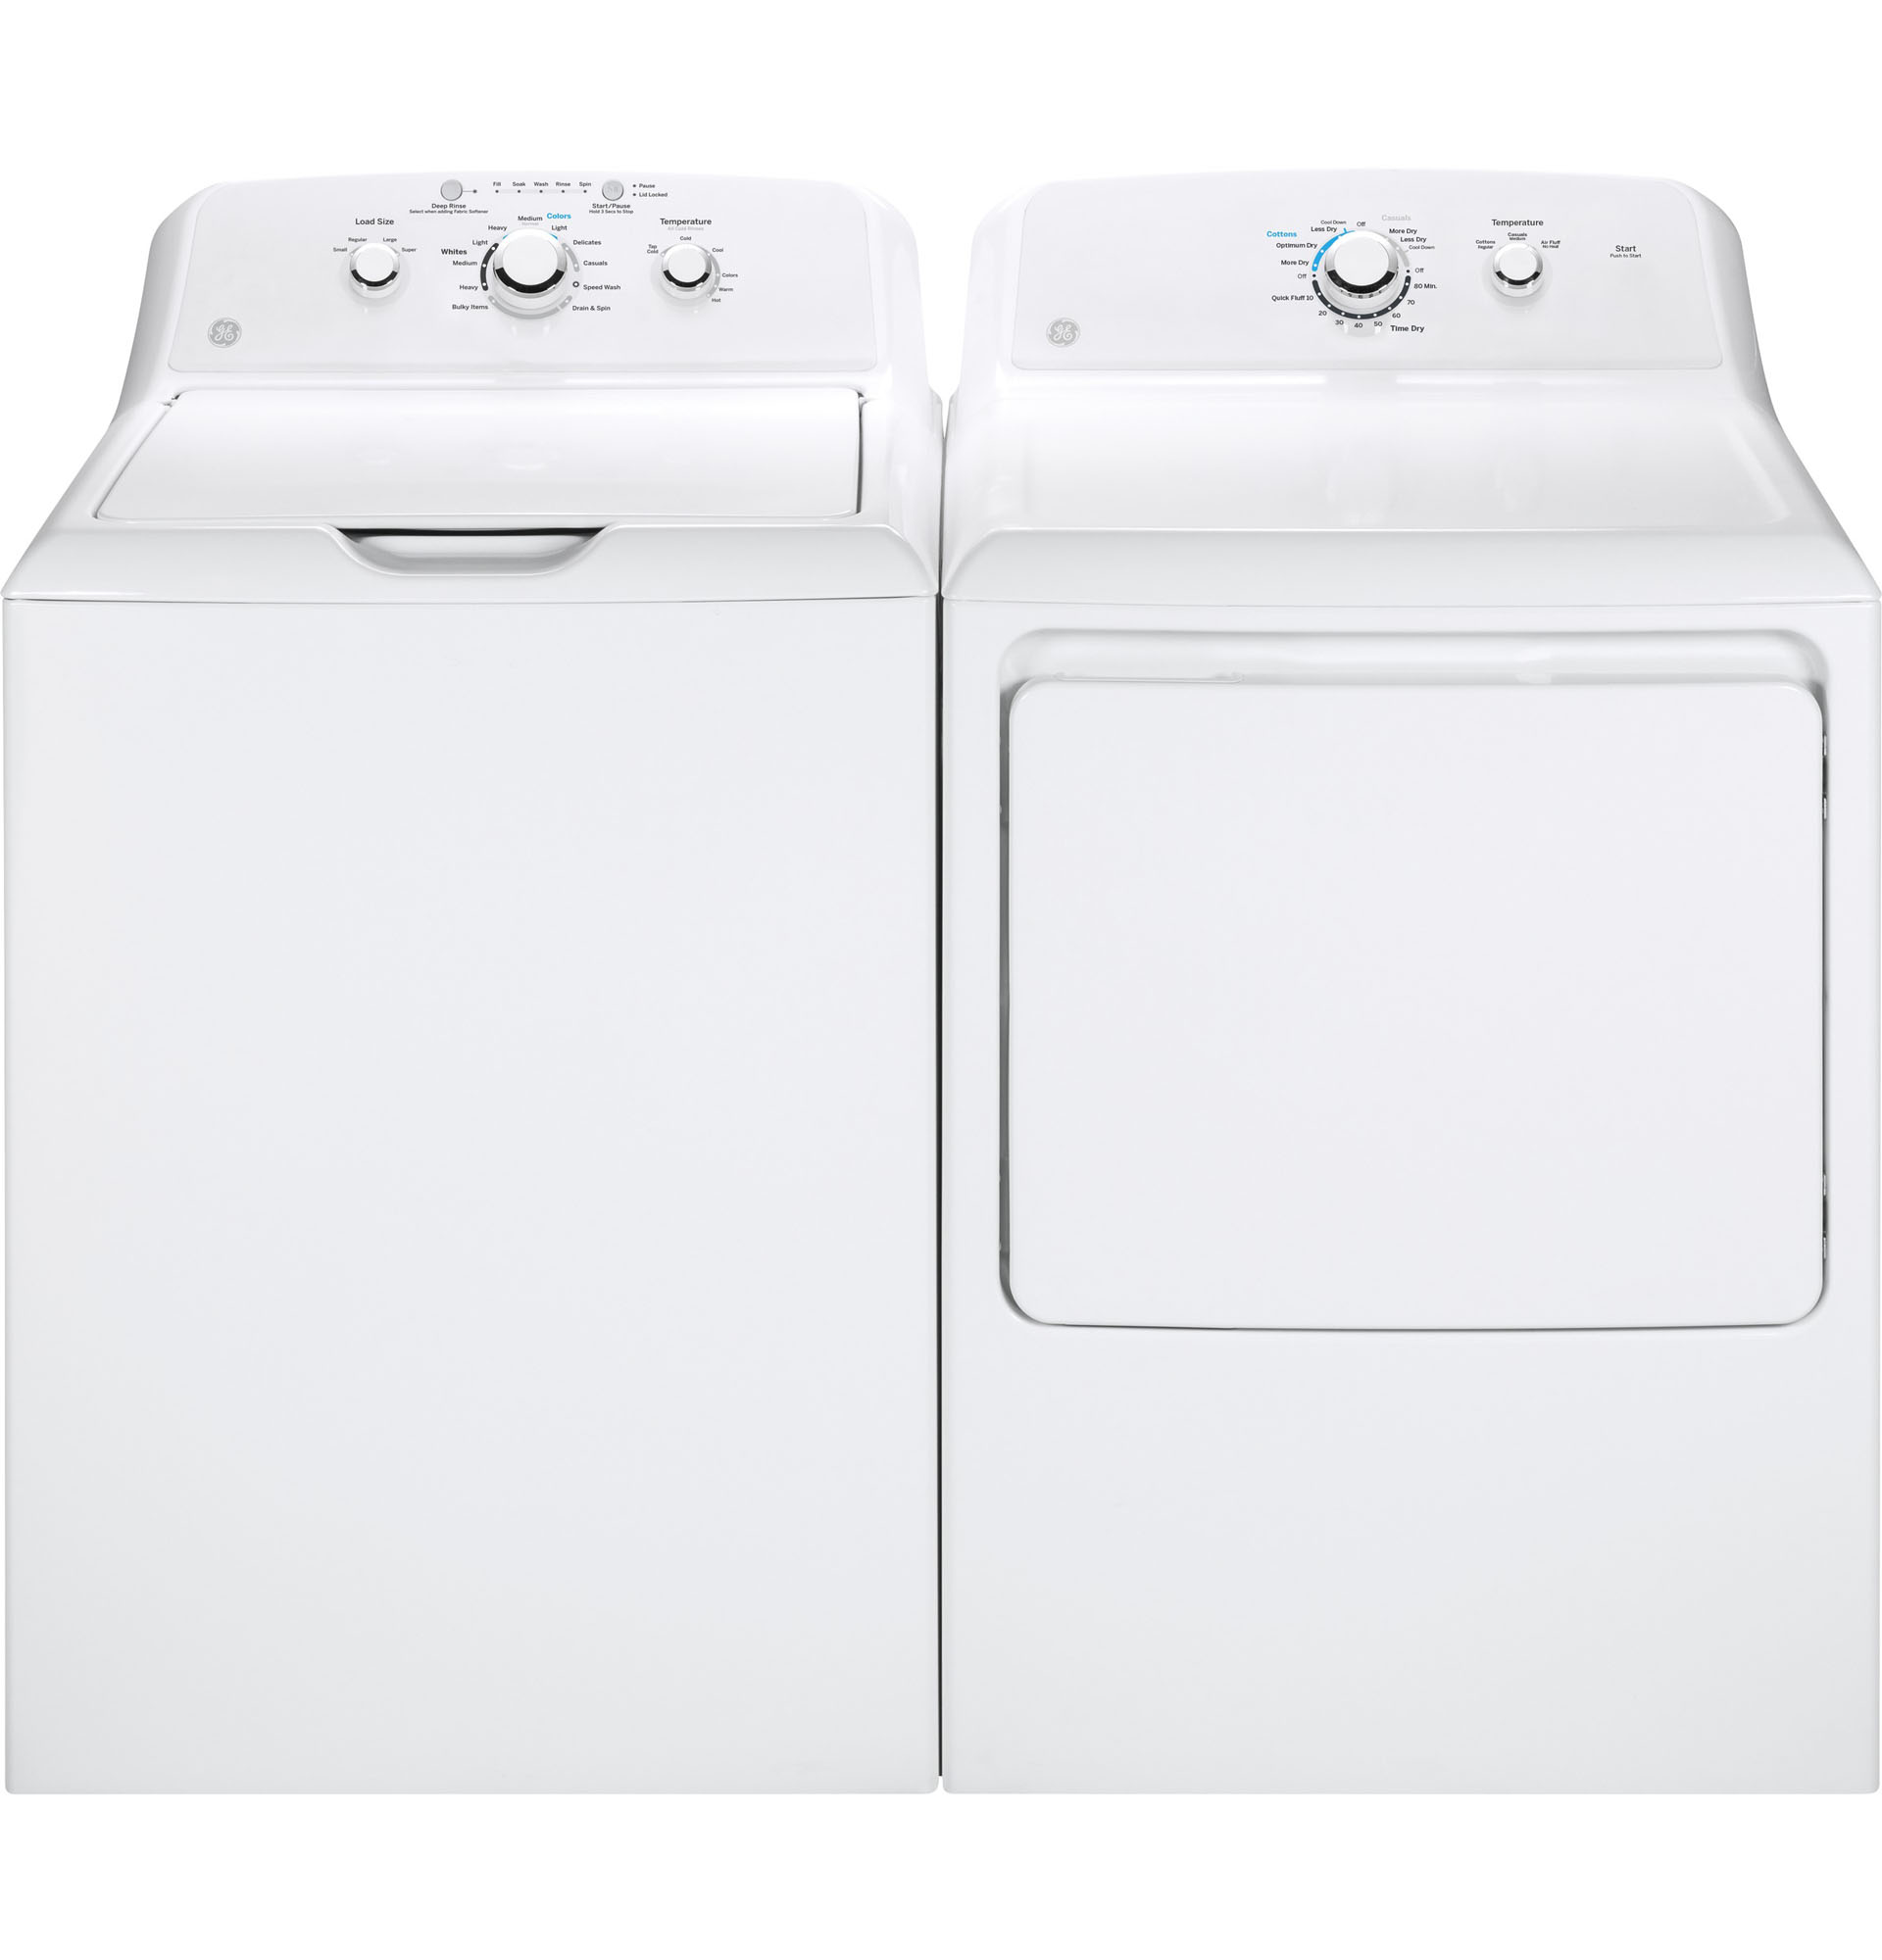 GE Appliances GTW330ASKWW 3.8 cu. ft. Top Load Washer - White